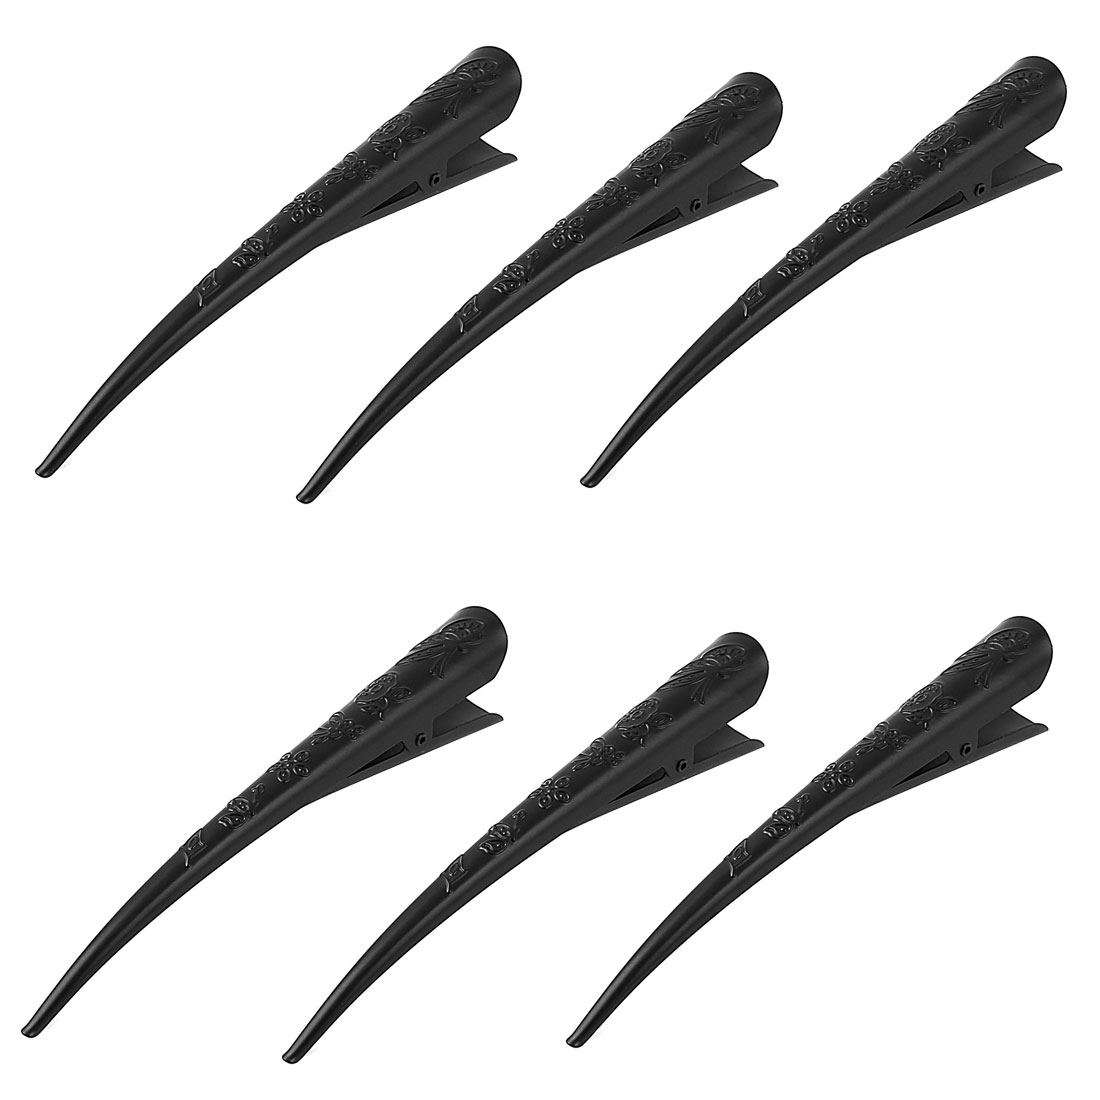 Lady Metal Flower Pattern Hairstyle Alligator Hair Clip Pin Barrette Black 6 Pcs